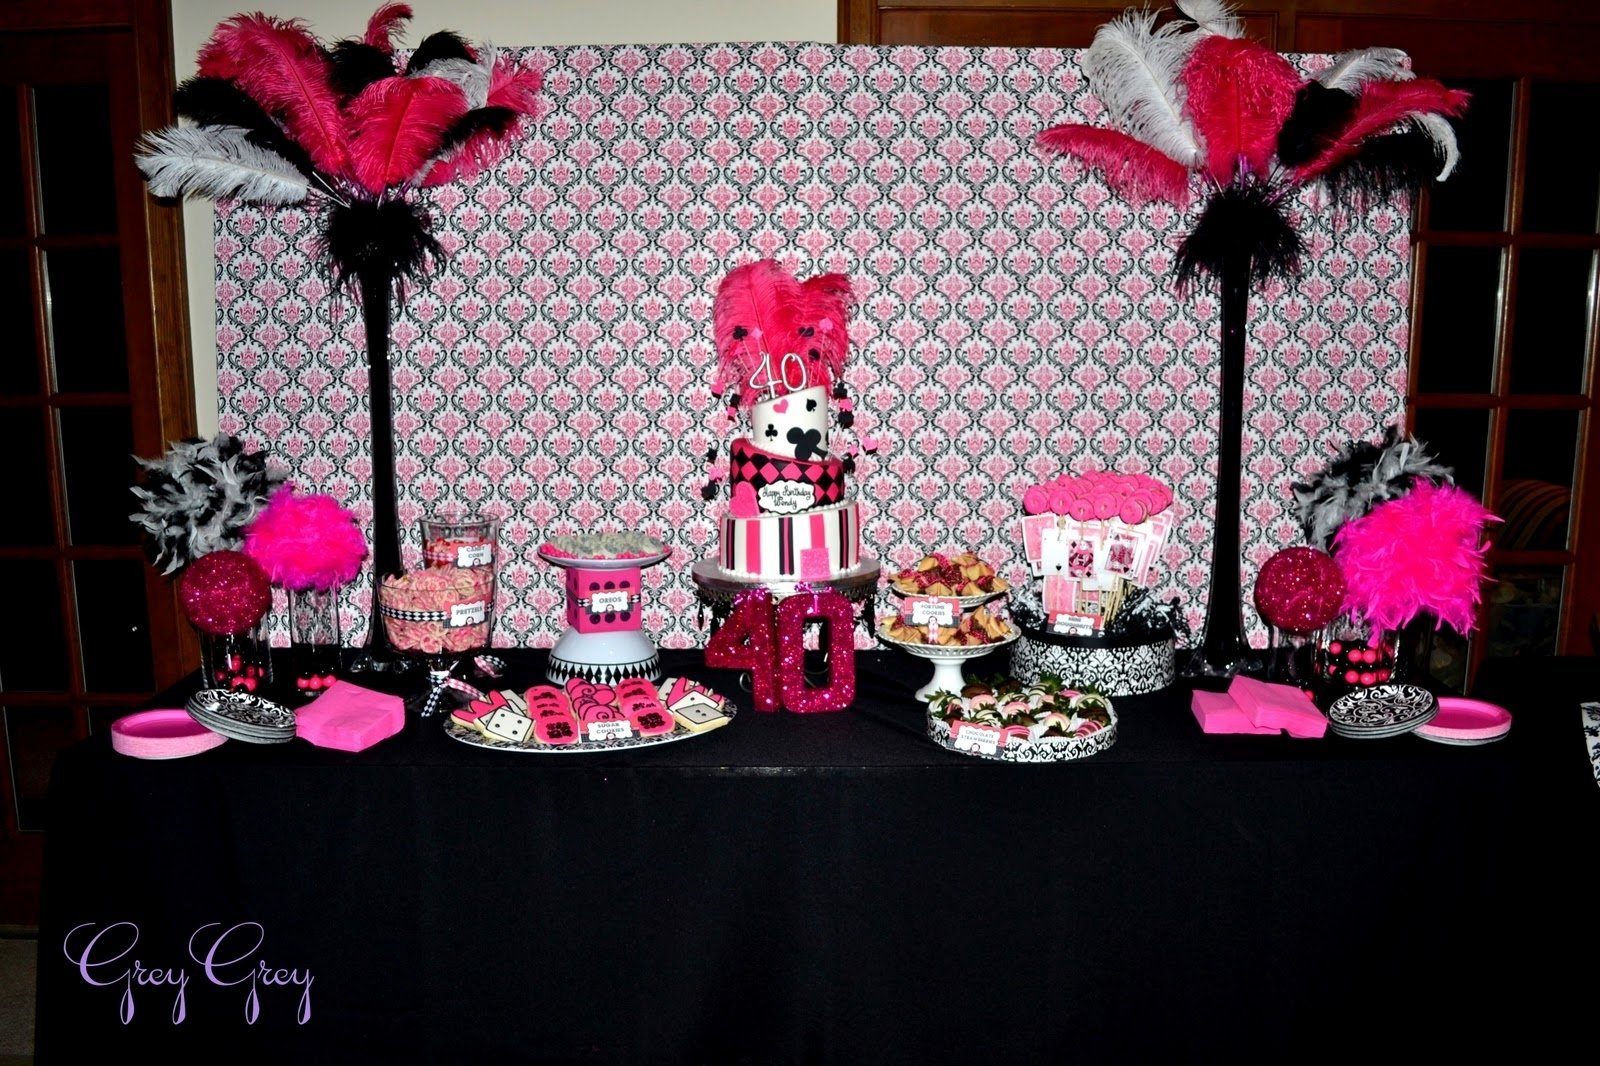 10 Most Popular Ideas For A 40Th Birthday Party 40th birthday party ideas chicago 40th birthday party ideas that 2 2020